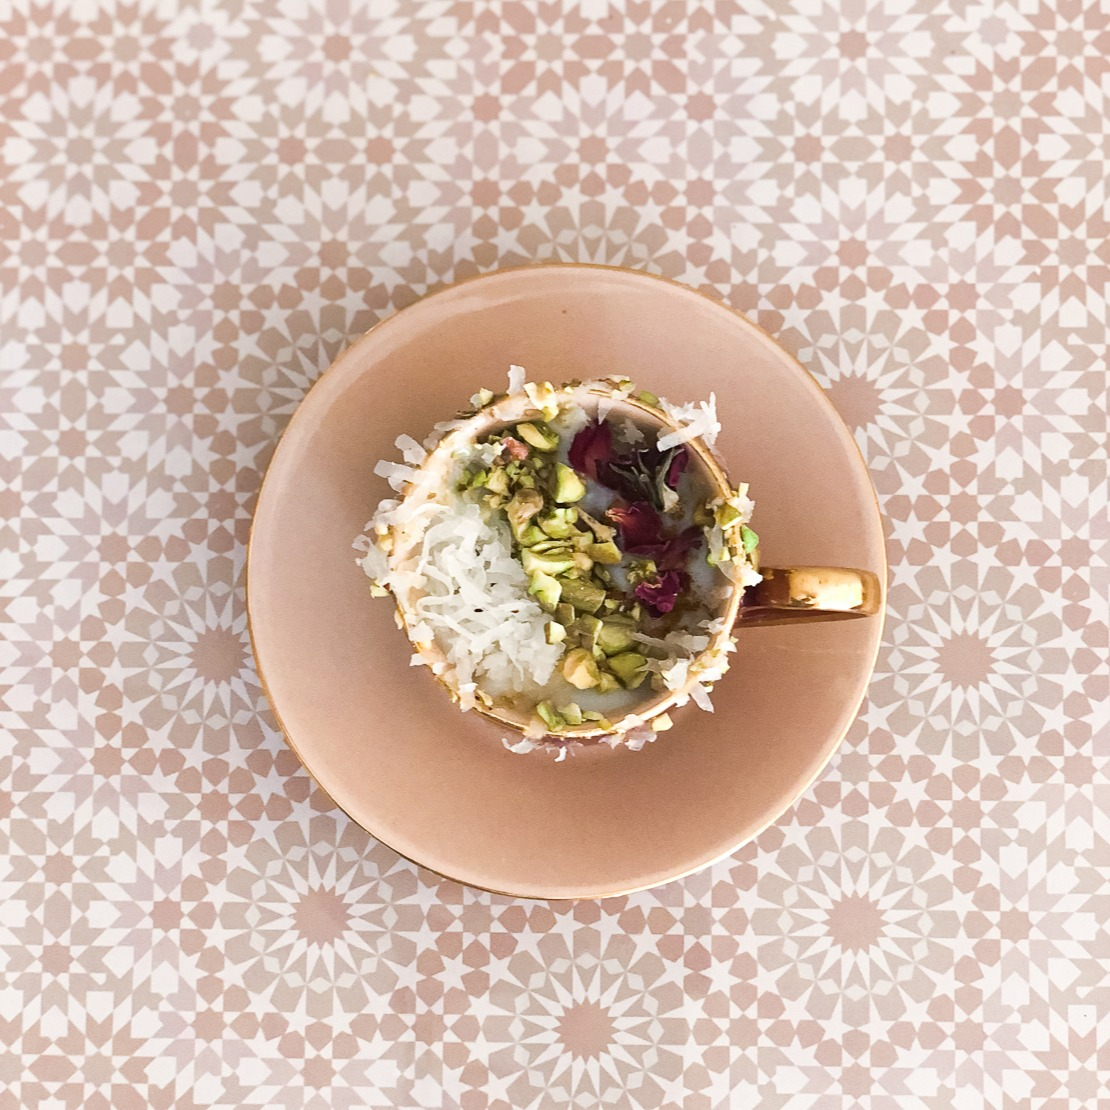 Cup of Sahleb topped with rose pistachio